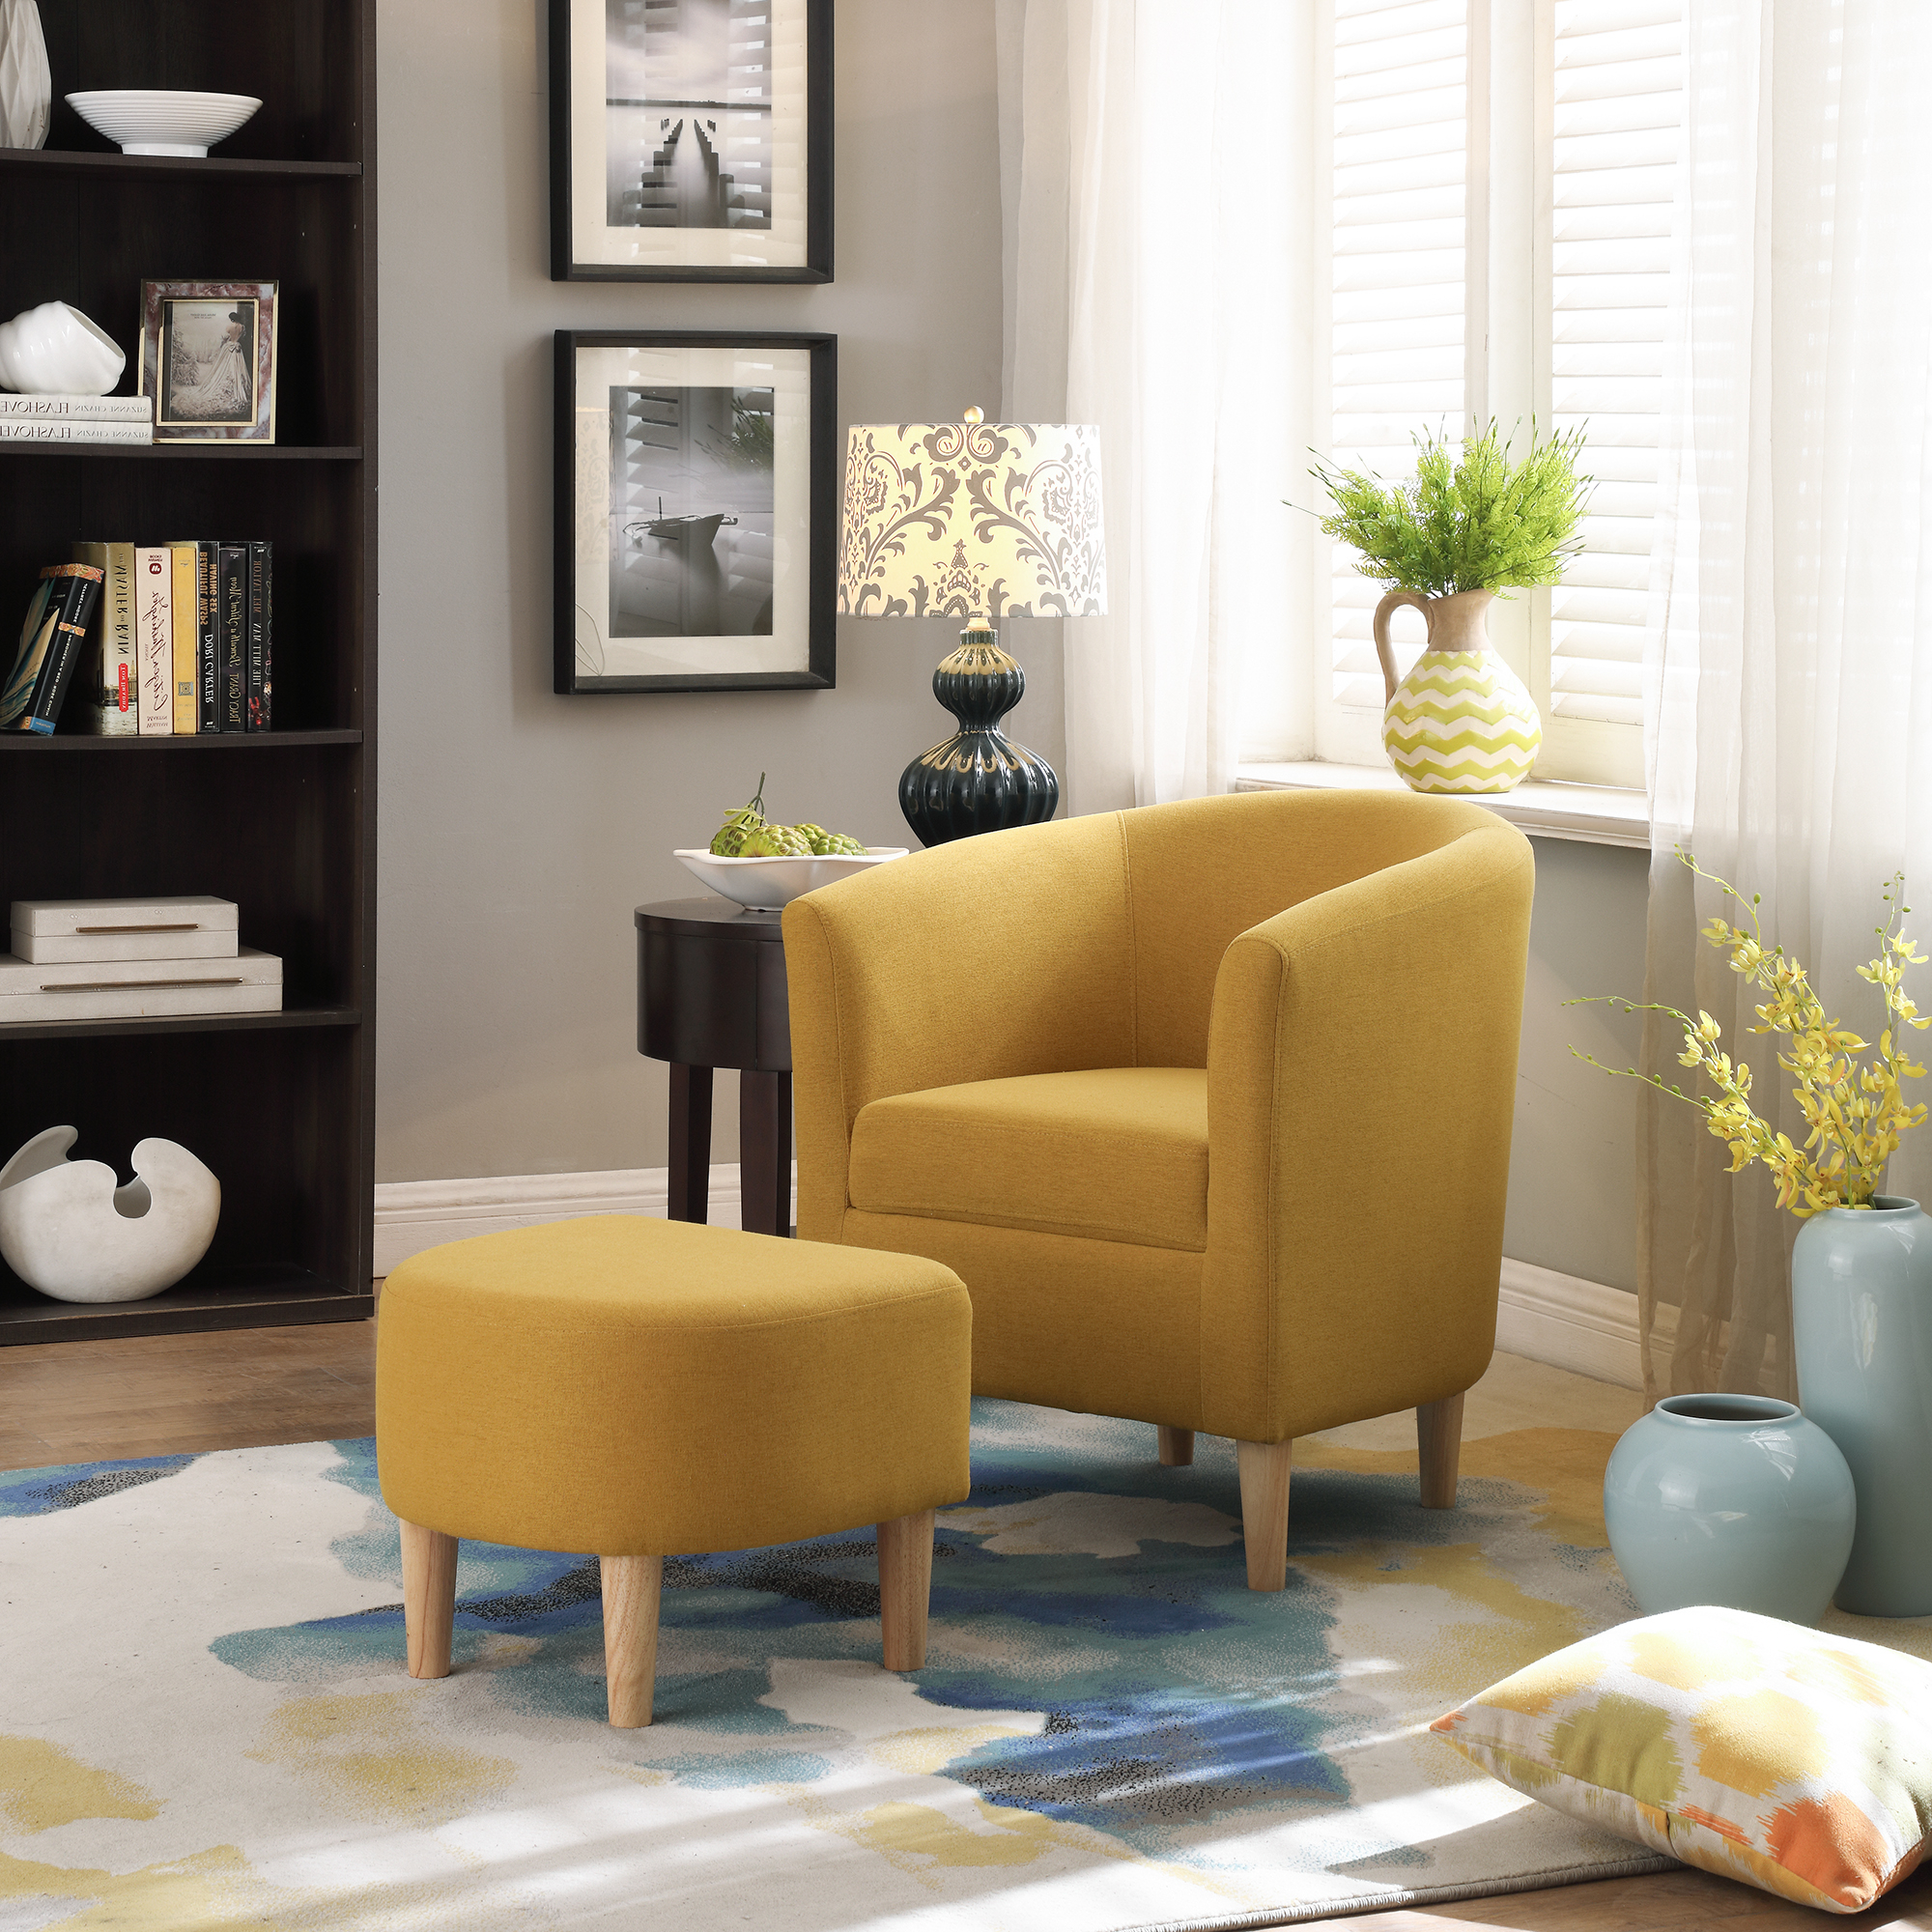 Modern Accent Arm Chair Upholstered Chair Fabric Single Sofa + Ottoman Foot Rest Yellow – Walmart For Latest Modern Armchairs And Ottoman (View 11 of 20)